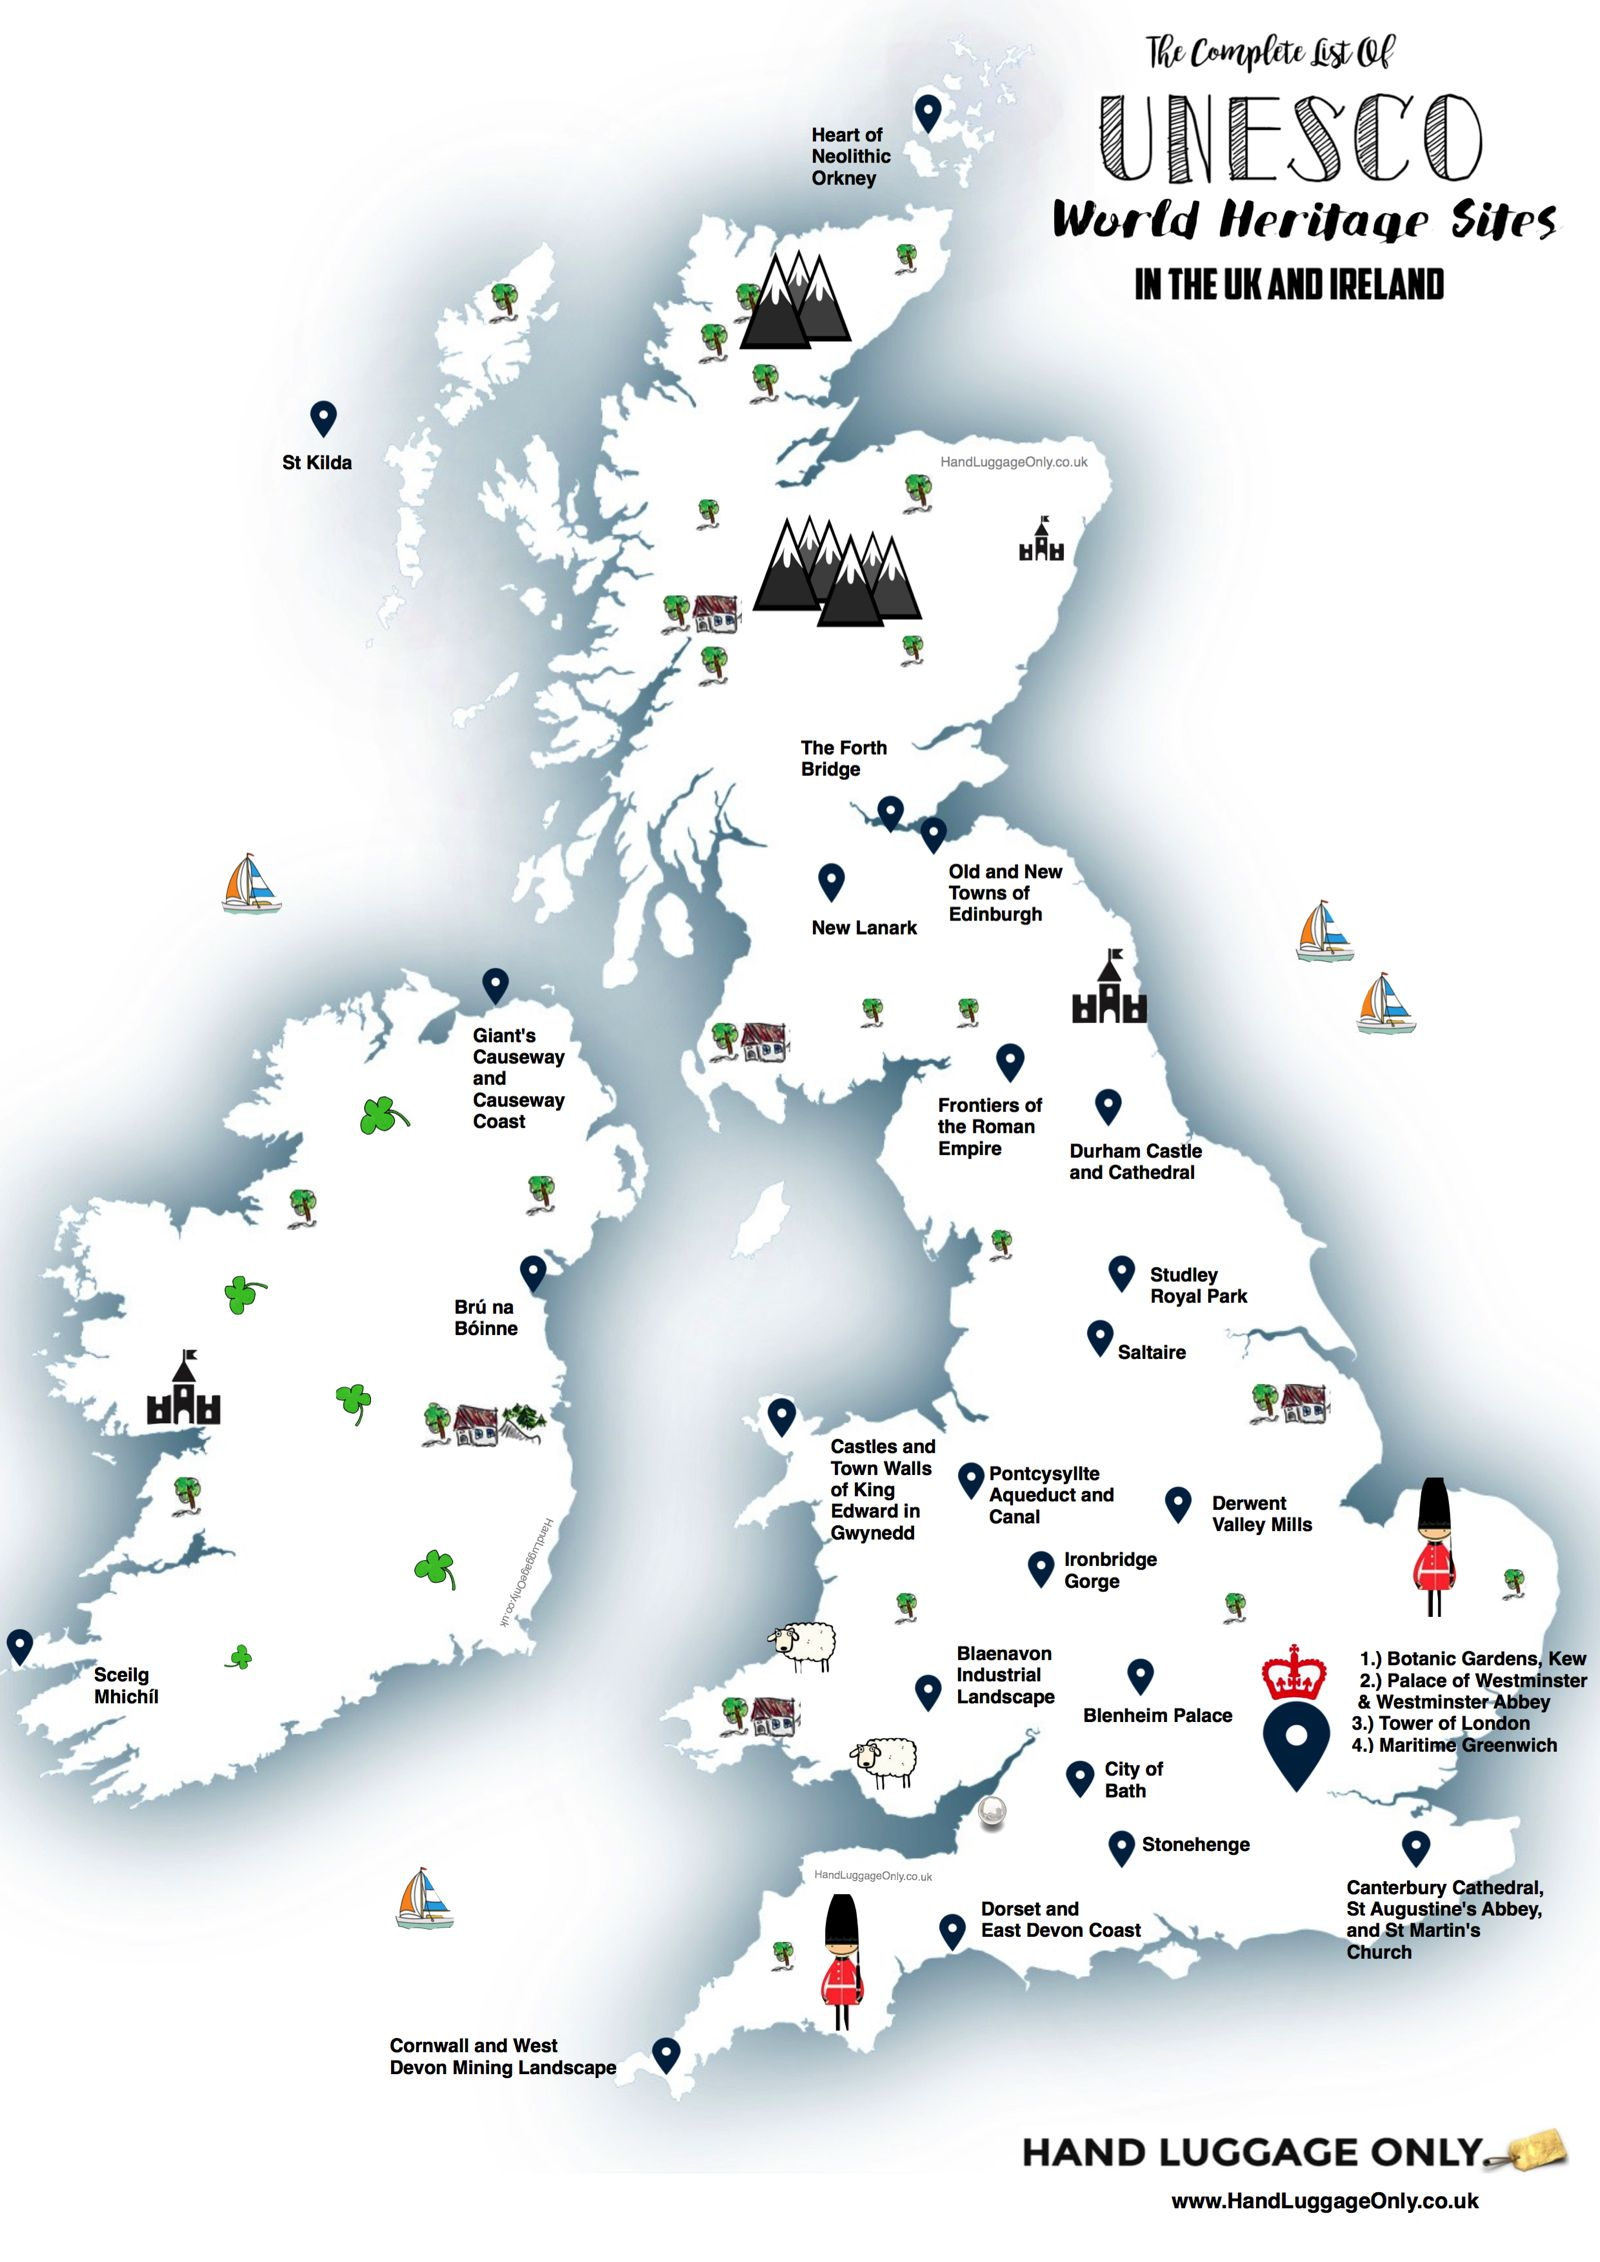 This map shows you where to find every unesco world heritage sites unesco world heritage sites in the uk and ireland gumiabroncs